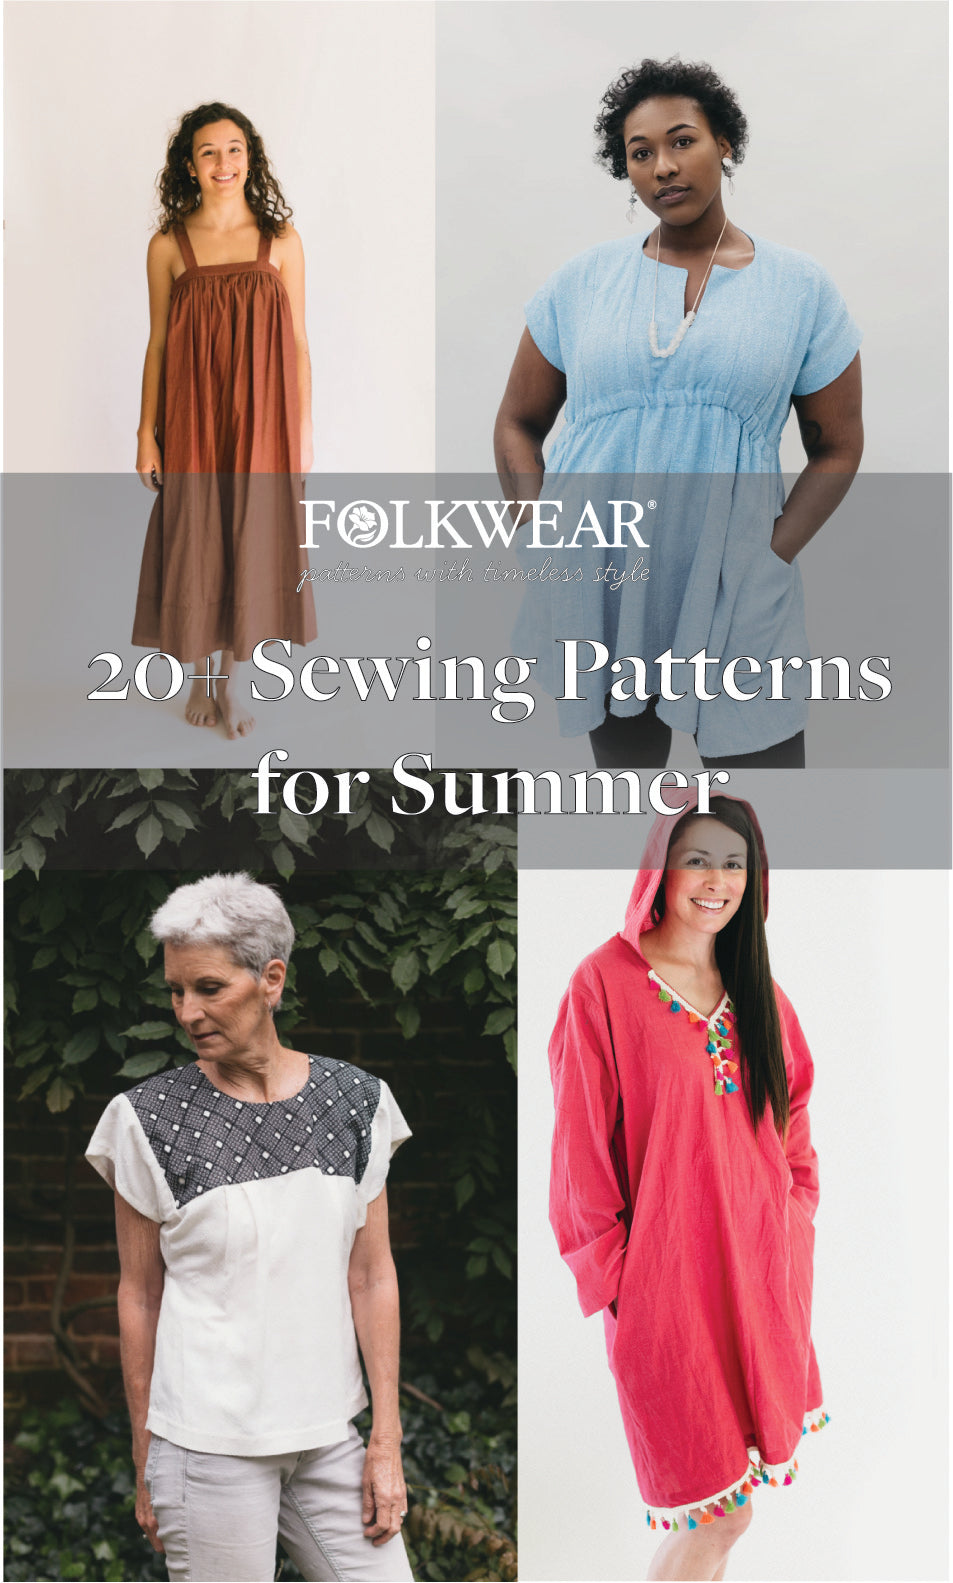 20+ Sewing Patterns for Summer